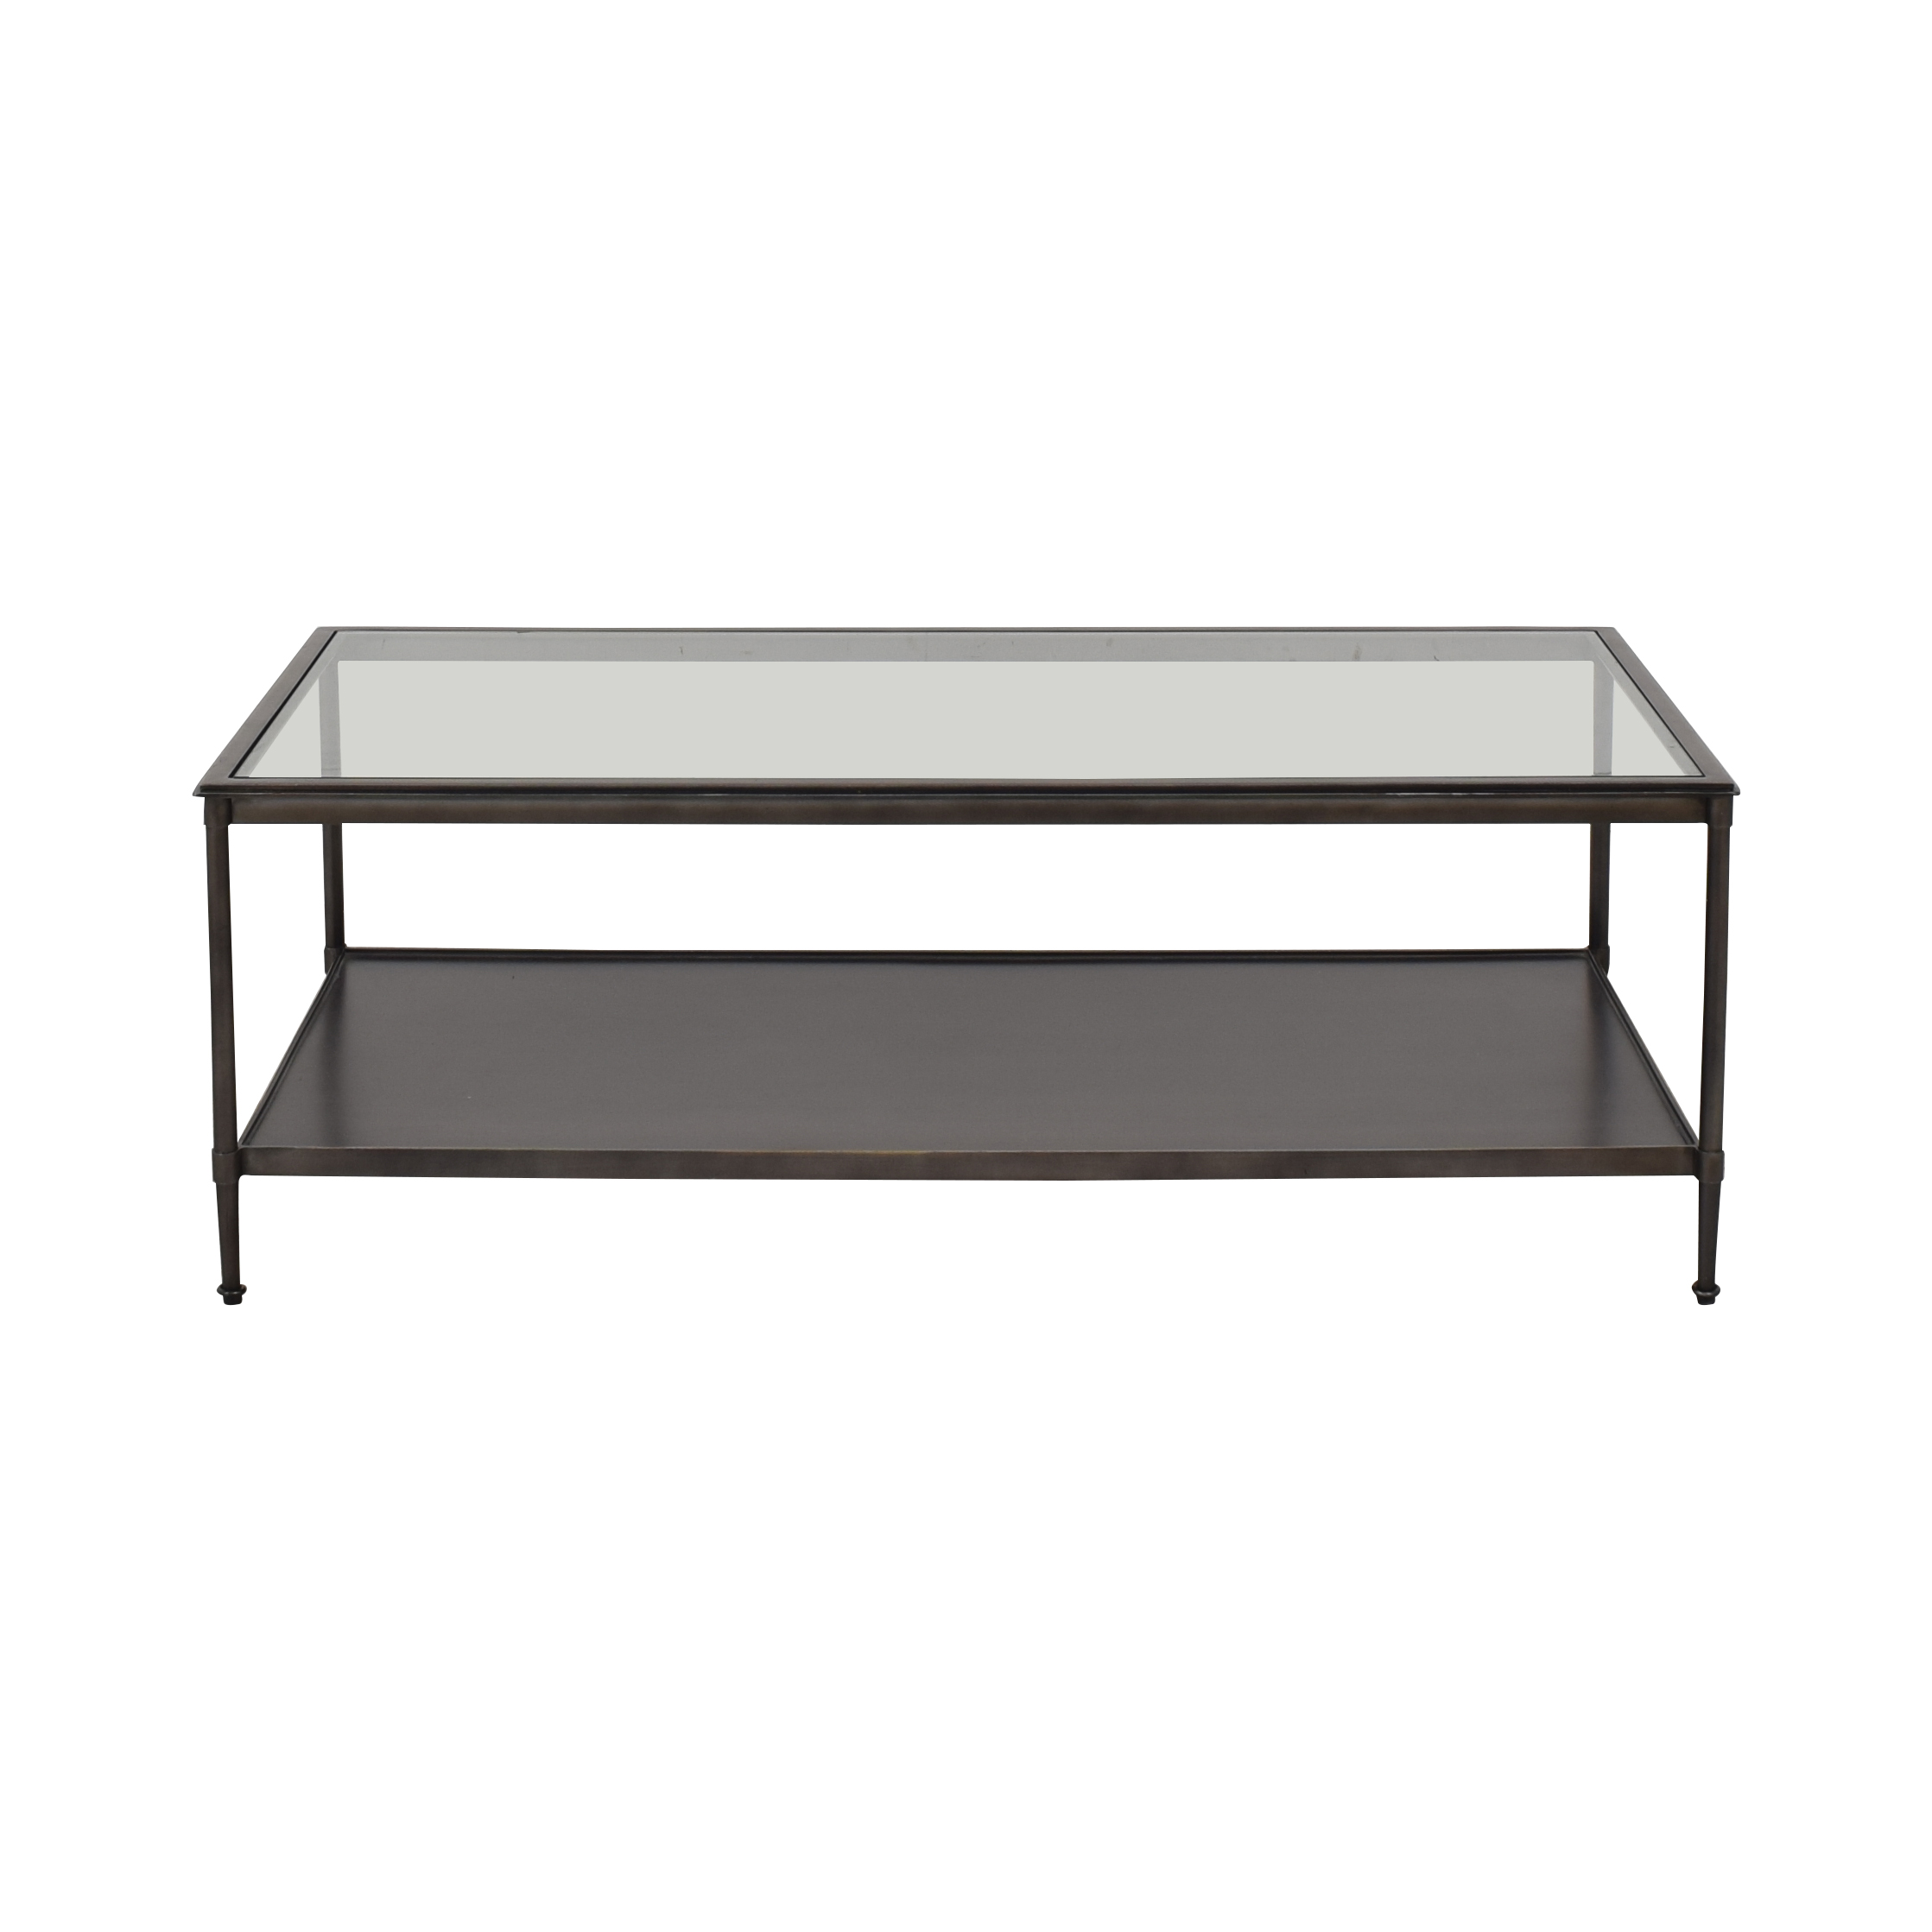 Crate & Barrel Crate & Barrel Kyra Coffee Table for sale